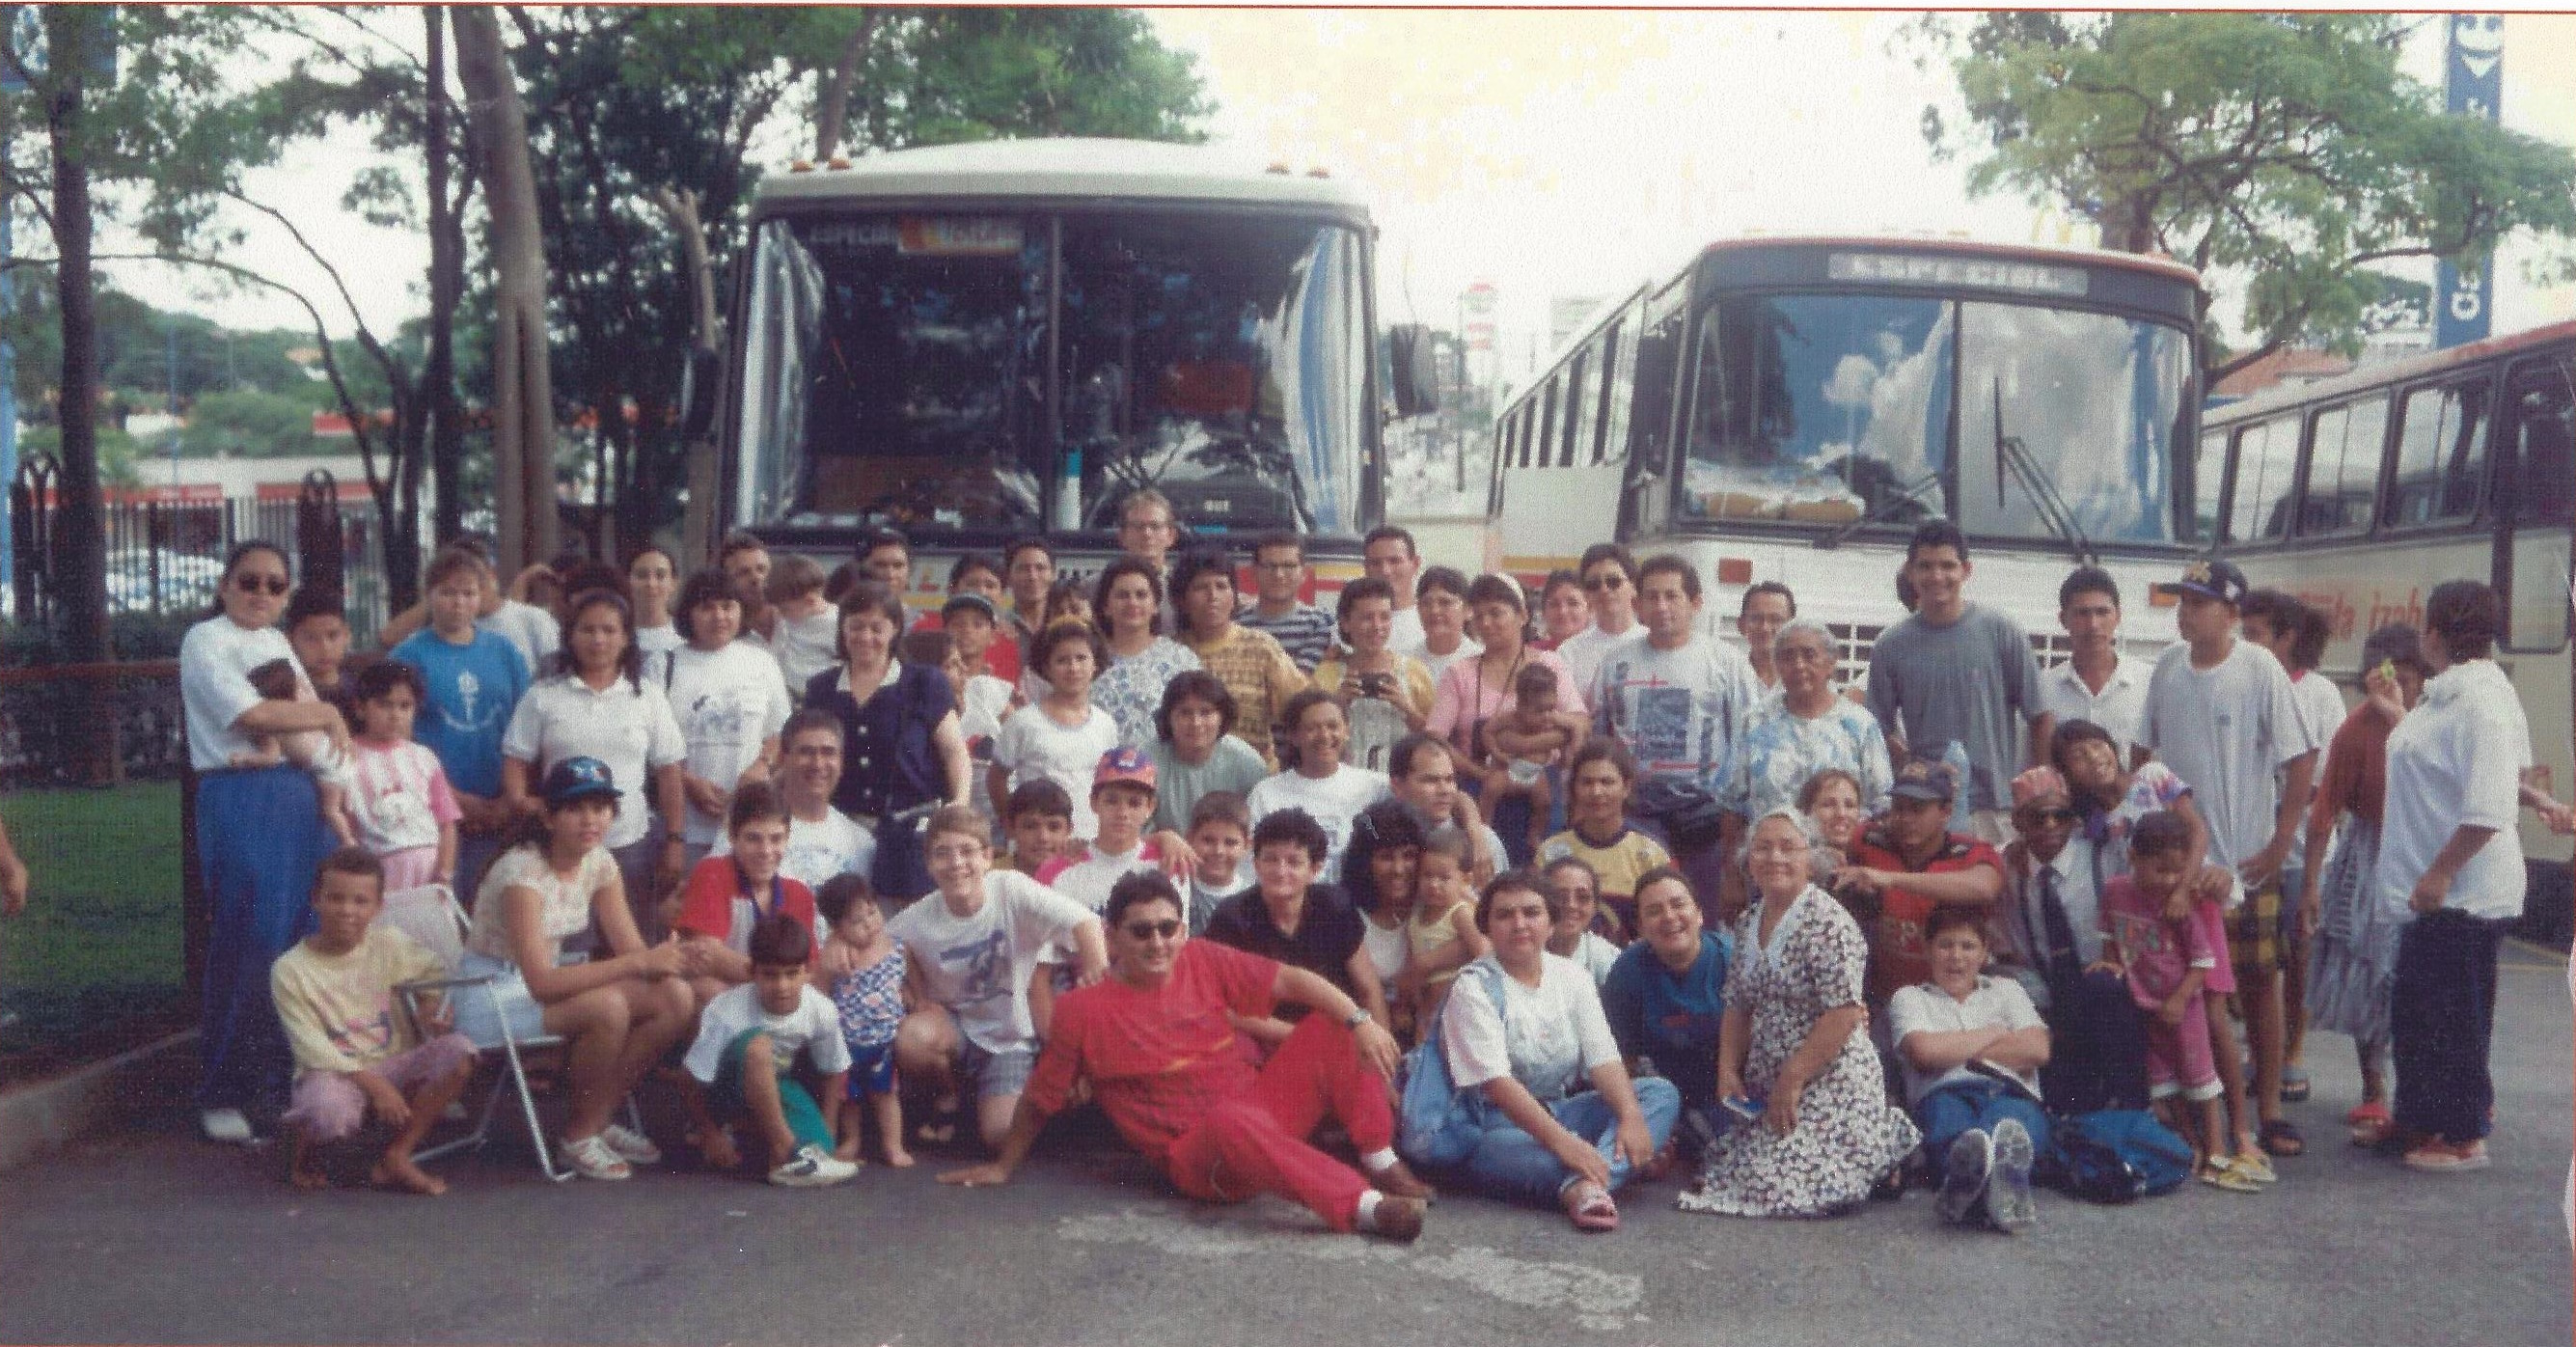 The temple caravan from Manaus, Brazil, reaches their destination, pausing for a photo in front of the buses just inside the grounds of the Sao Paulo Brazil Temple. The trip of nearly some 4,000 kilometers (or nearly 3,000 miles) took nearly a week traveling by boat and bus.